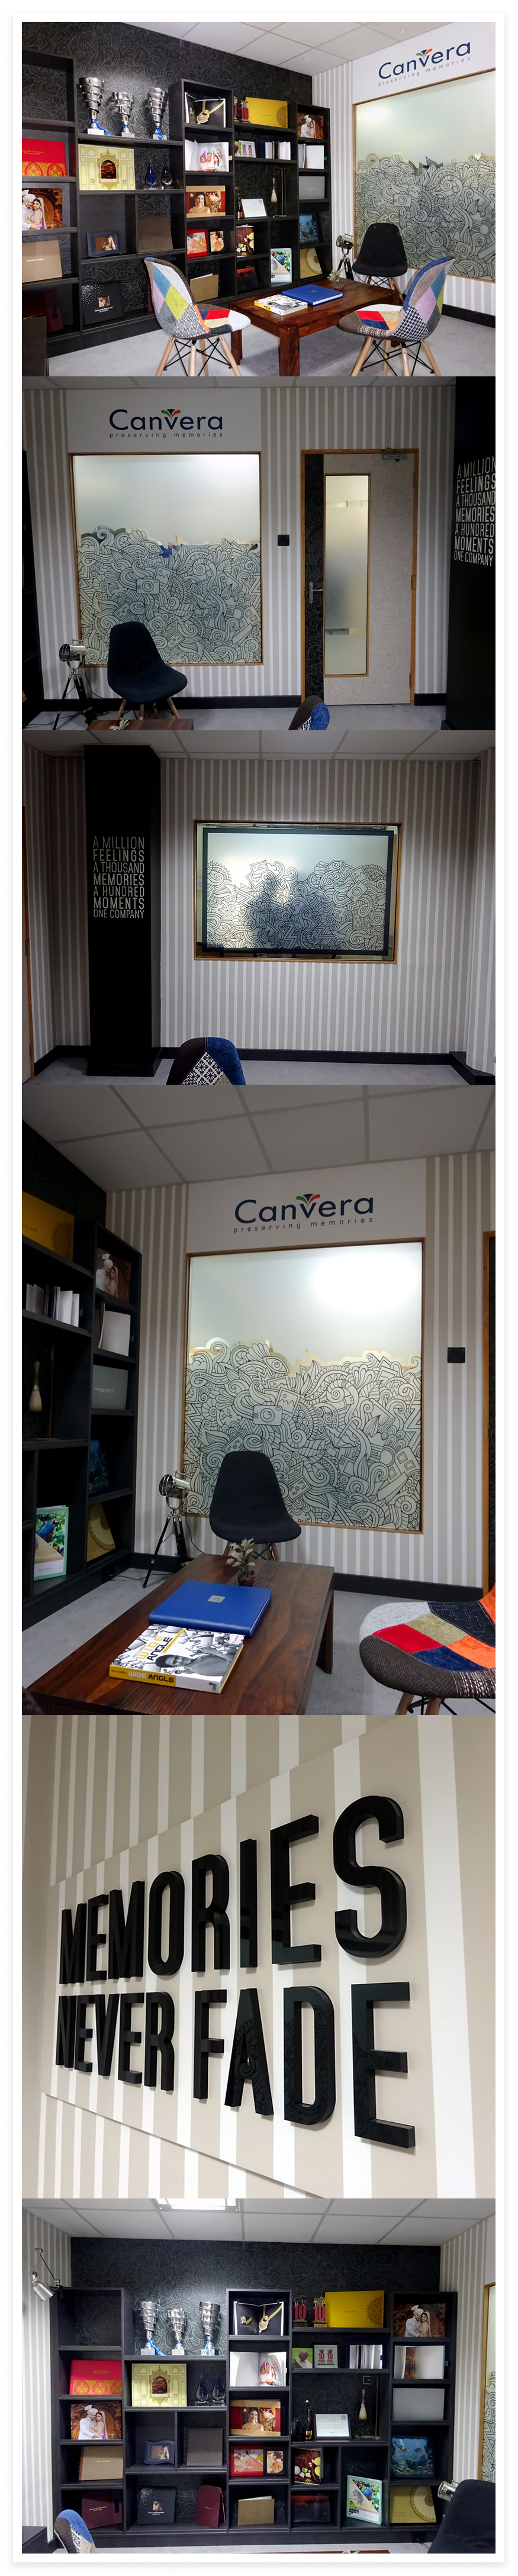 Canvera - Showcase